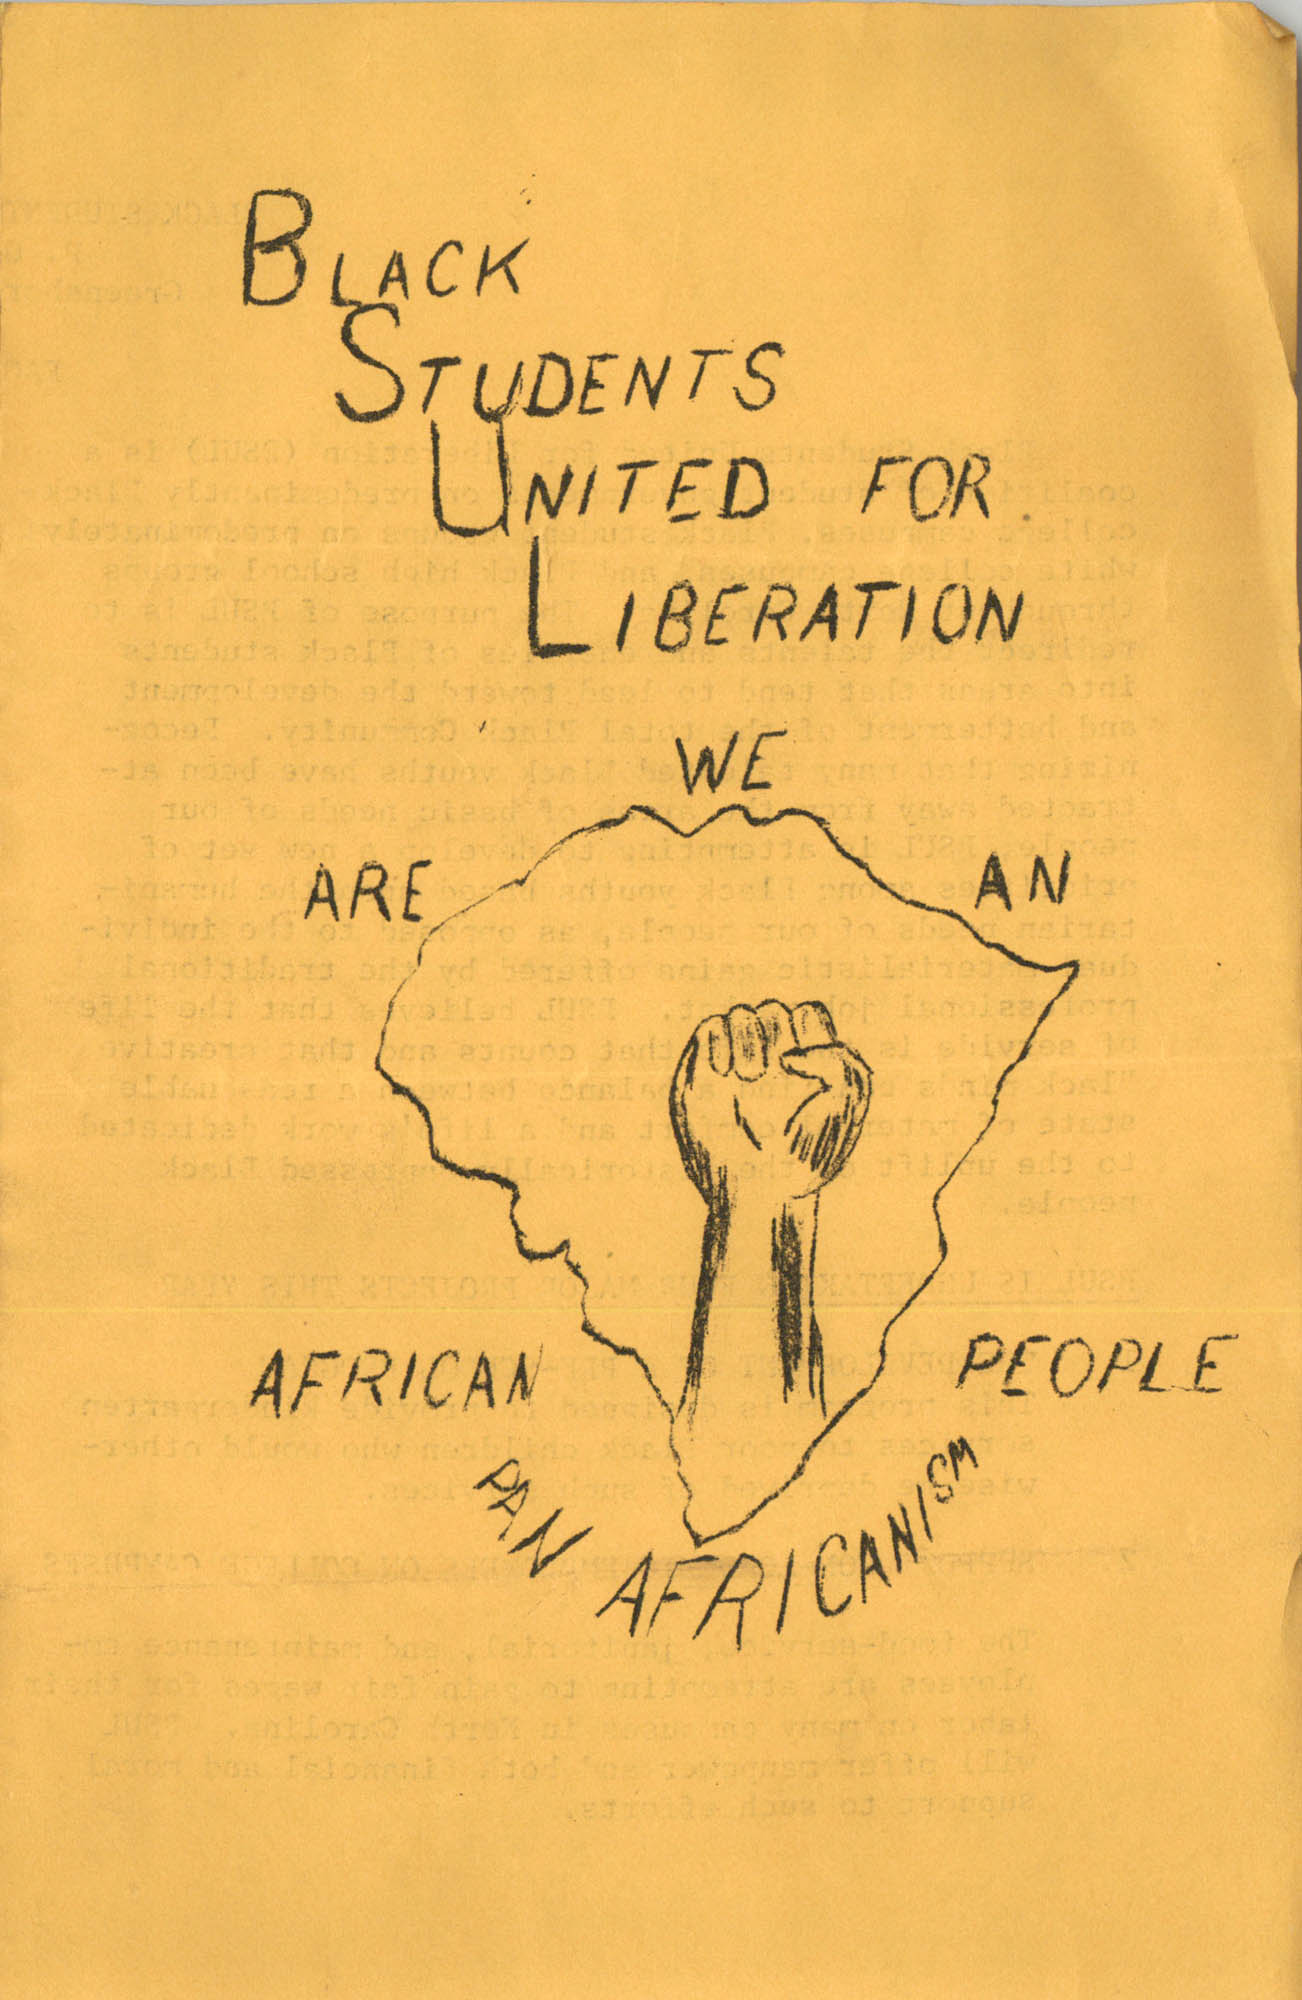 Black Students United for Liberation Fact Sheet and Staff, 1969-1970